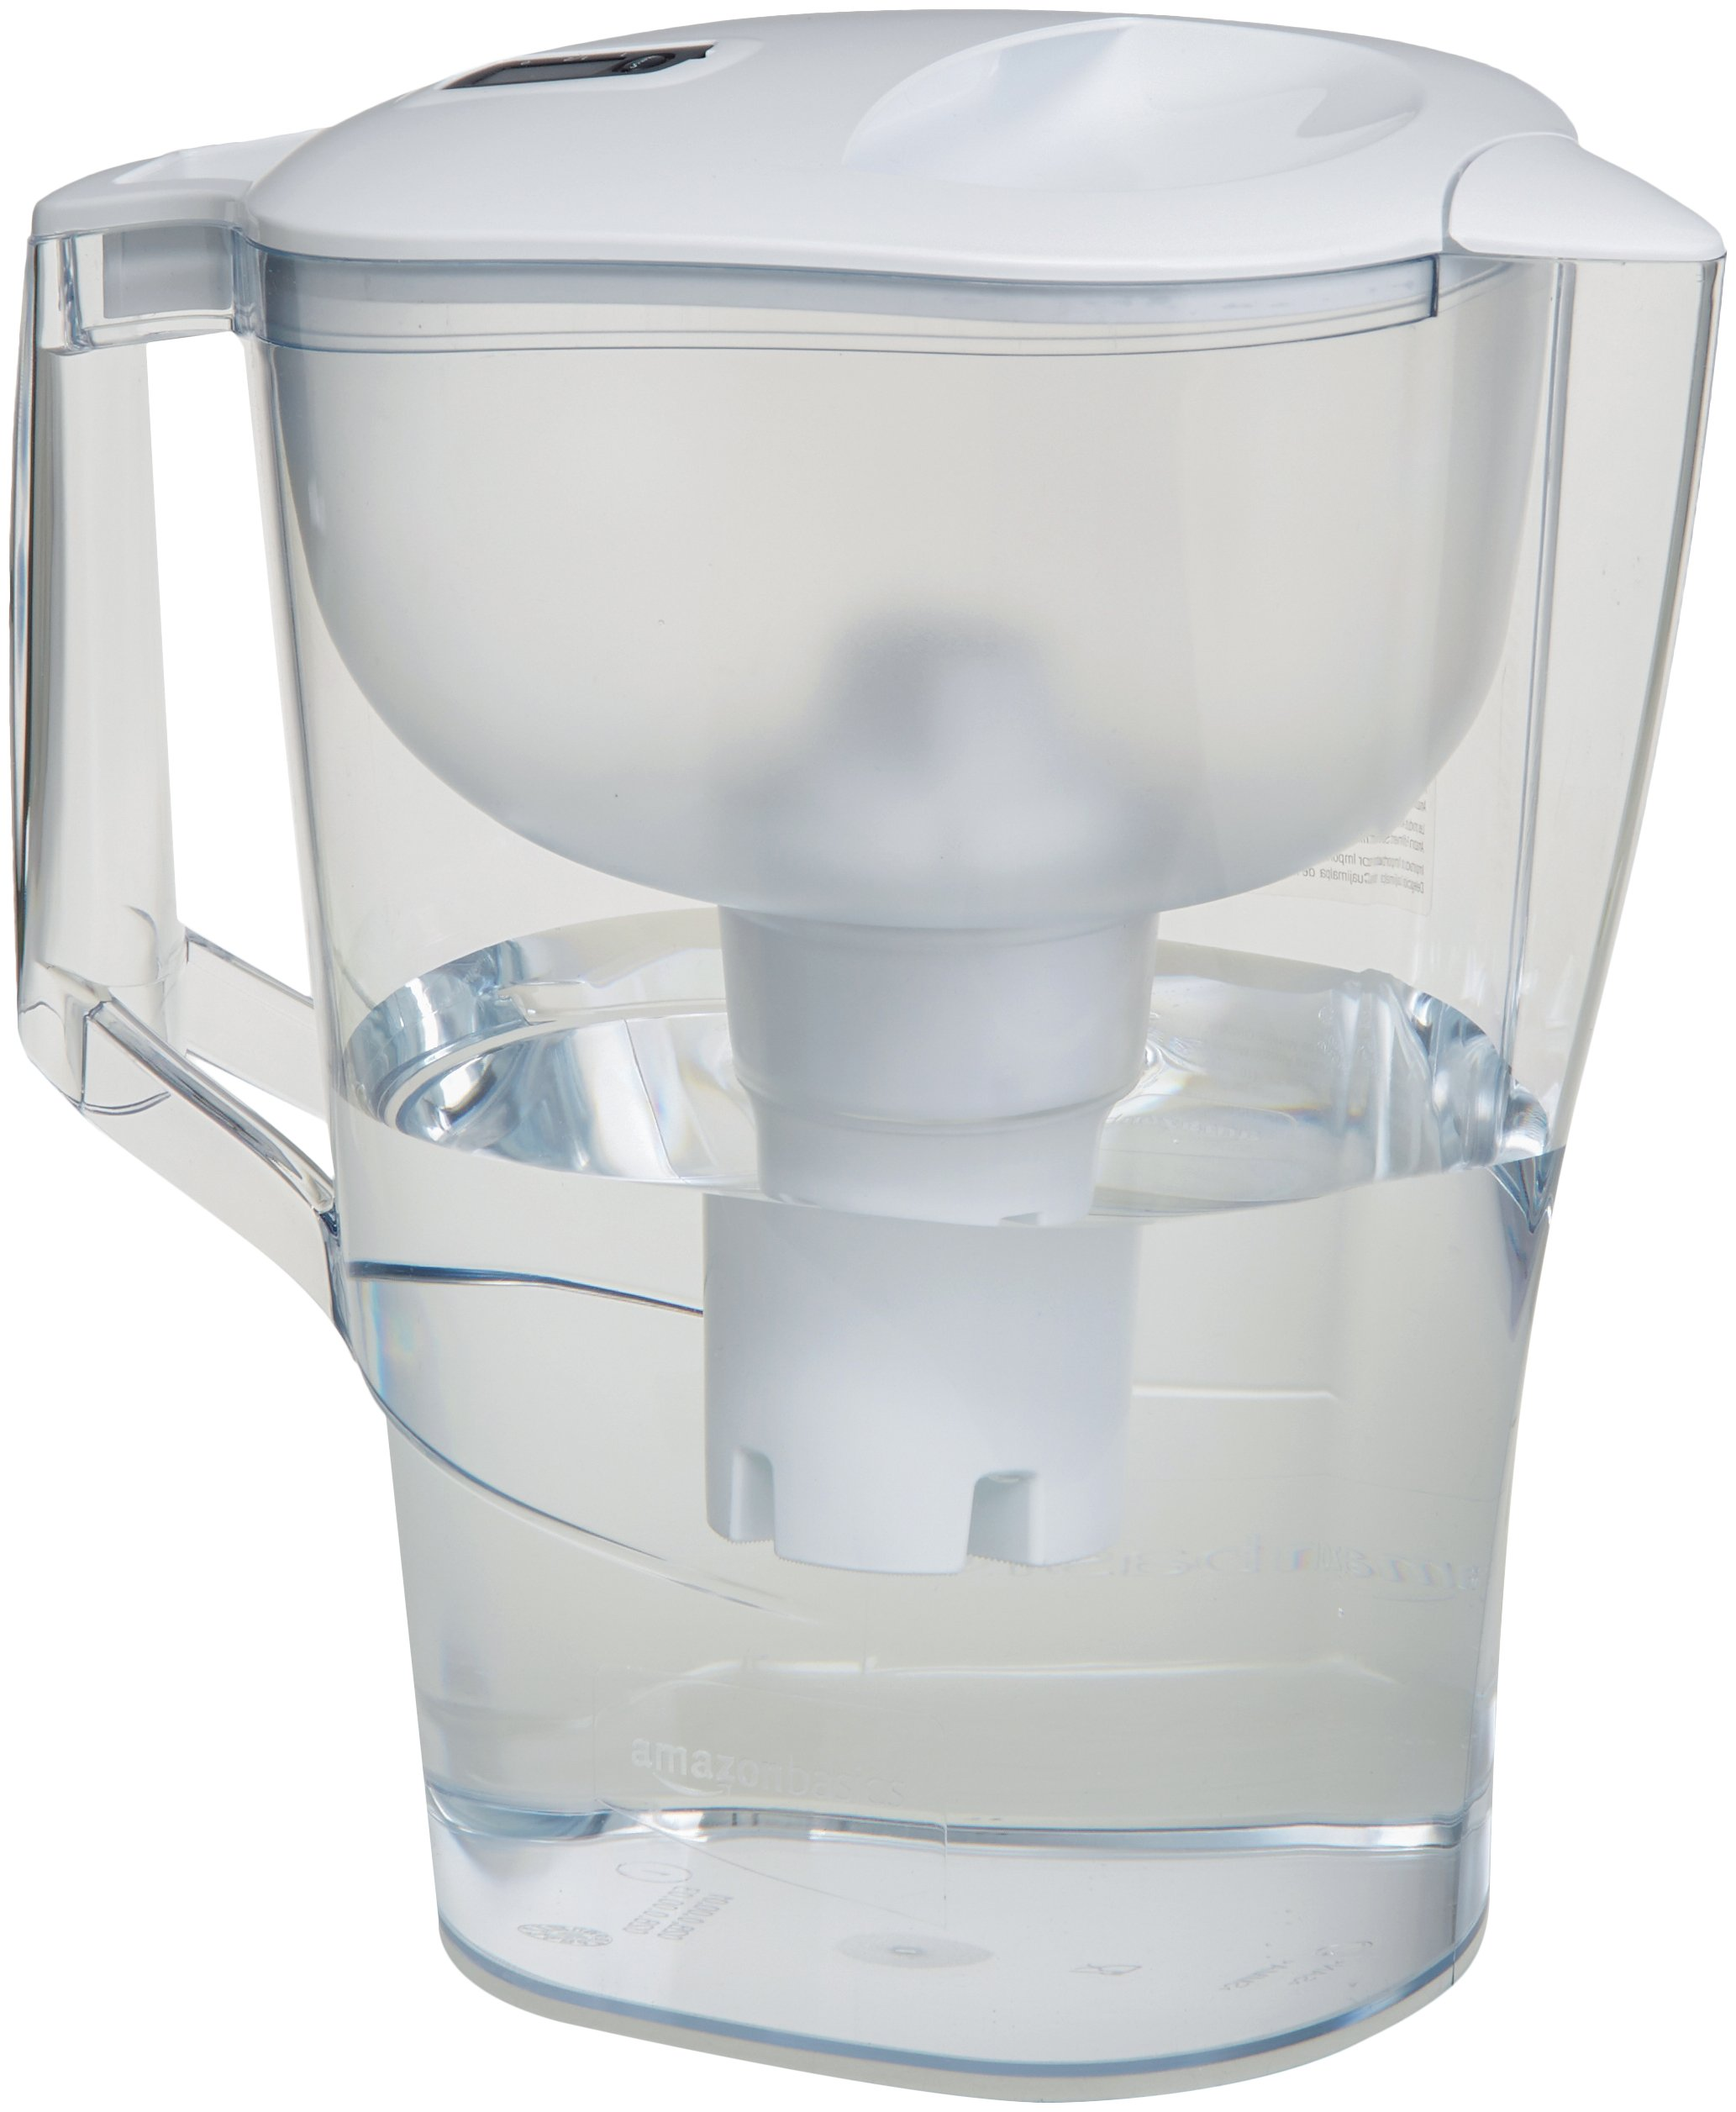 AmazonBasics Replacement Water Filters for AmazonBasics & Brita Pitchers - 6-Pack by AmazonBasics (Image #3)